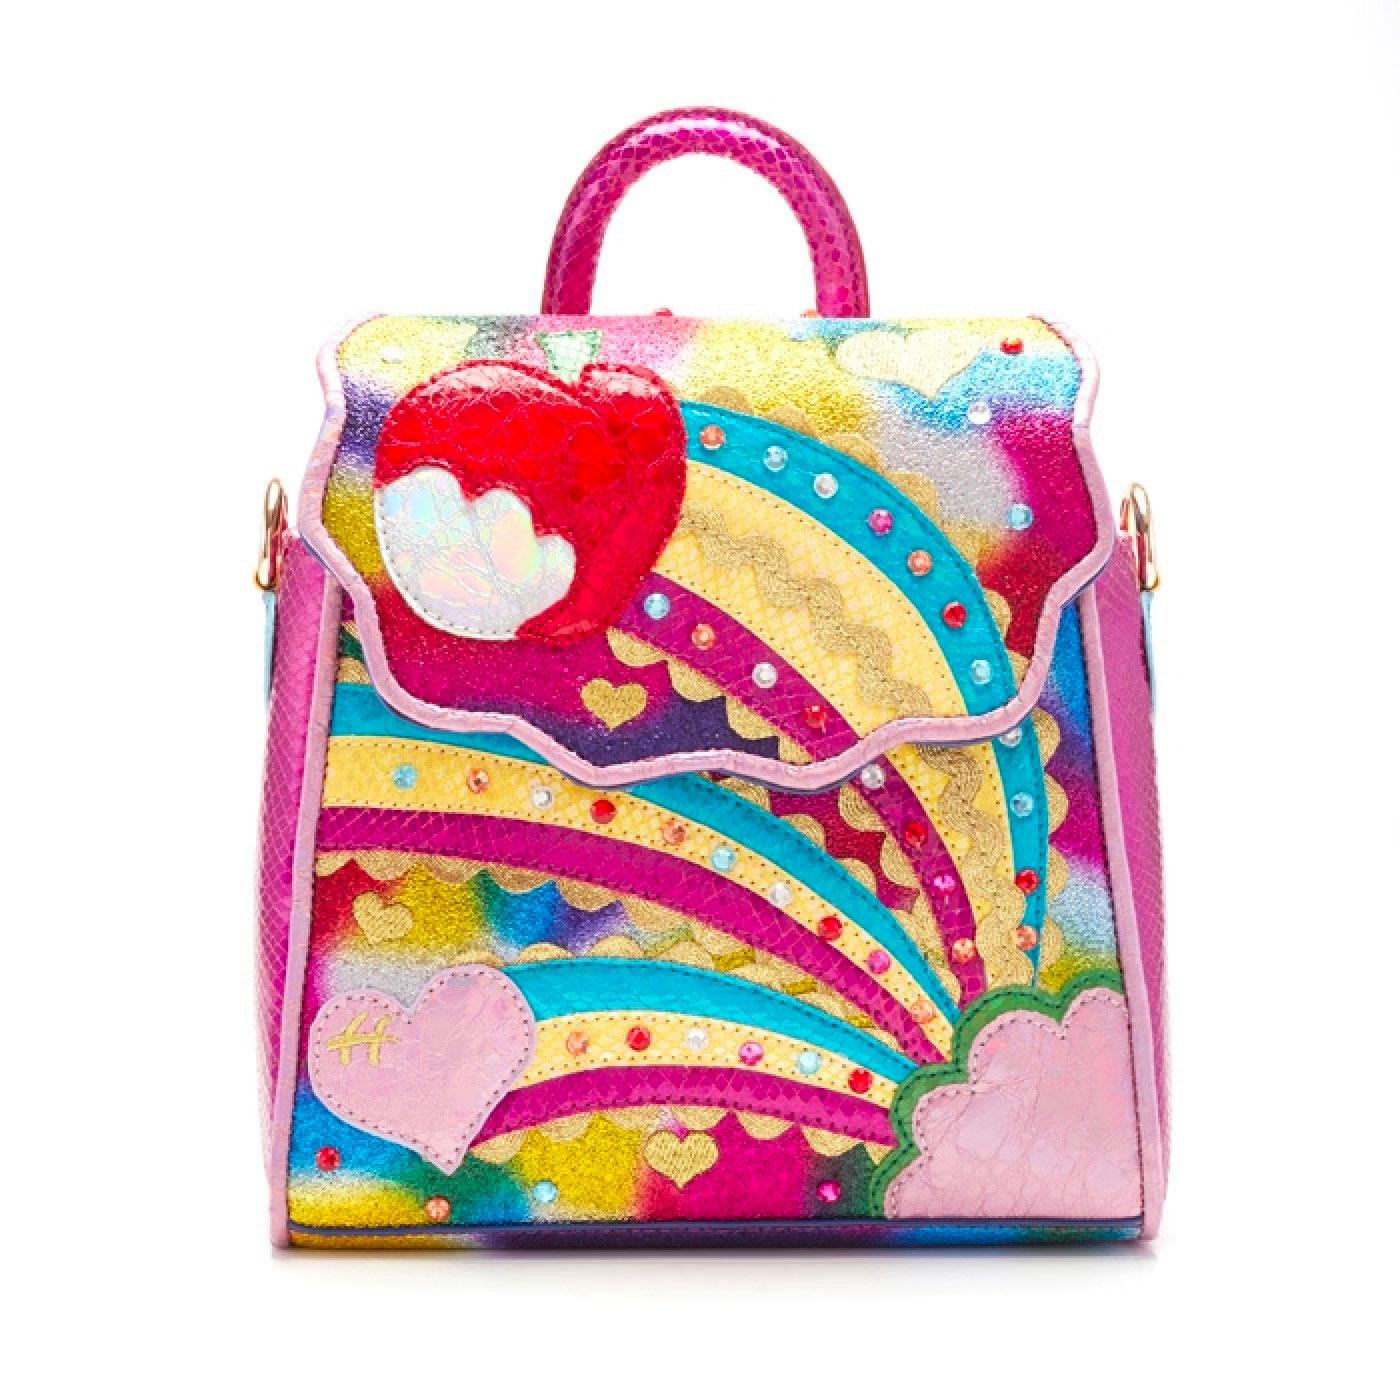 Rainbow Splash IRREGULAR CHOICE Handbag Pink